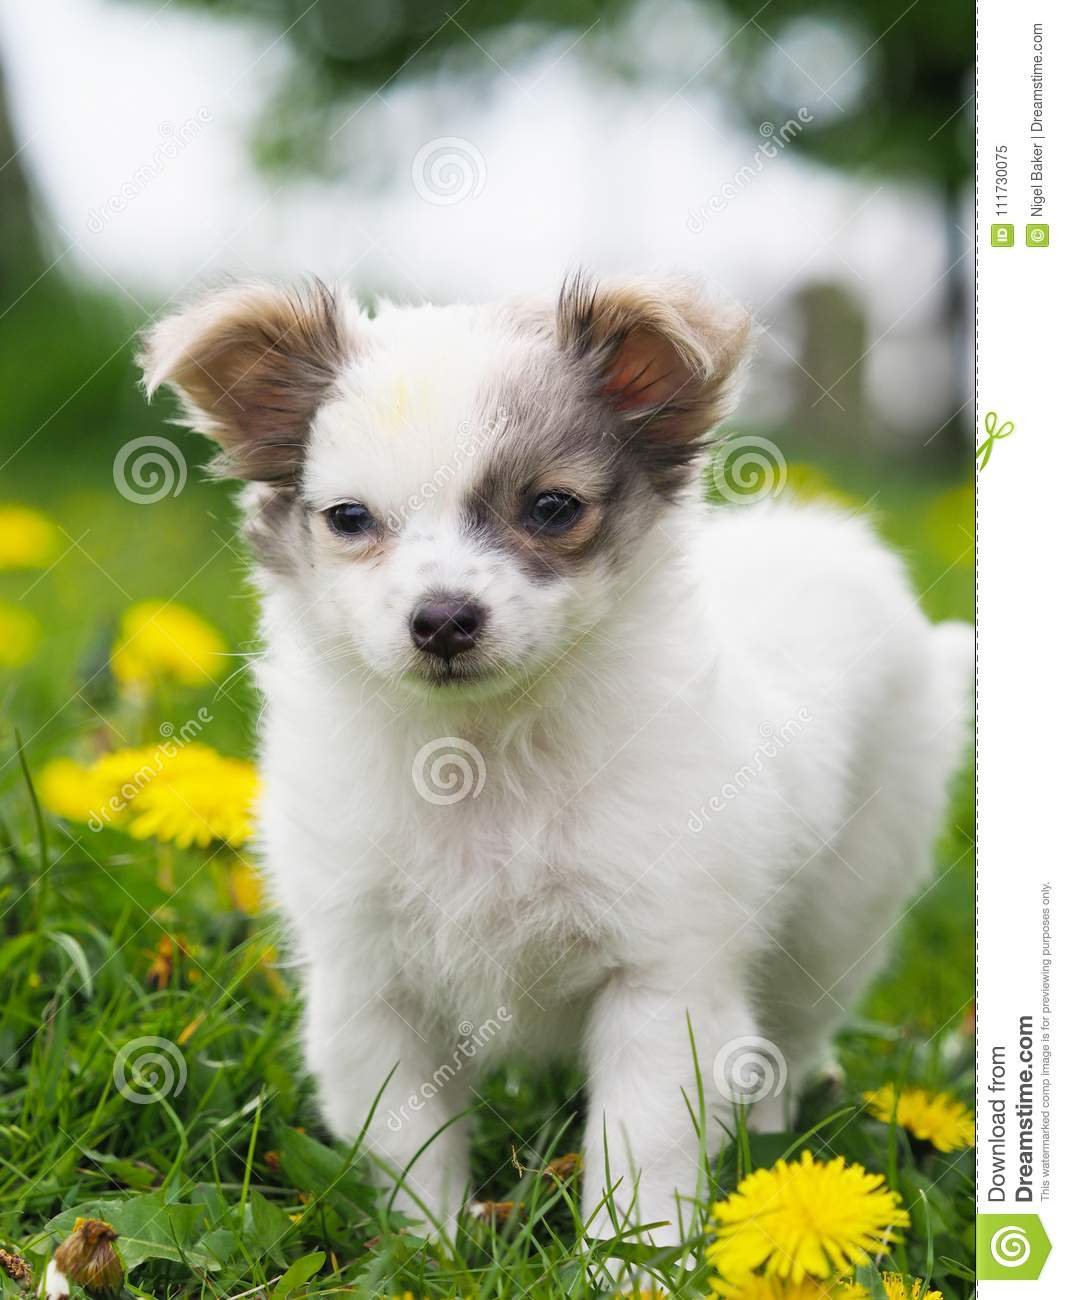 Cute Pup In Flowers Stock Image Image Of Pets Baby 111730075